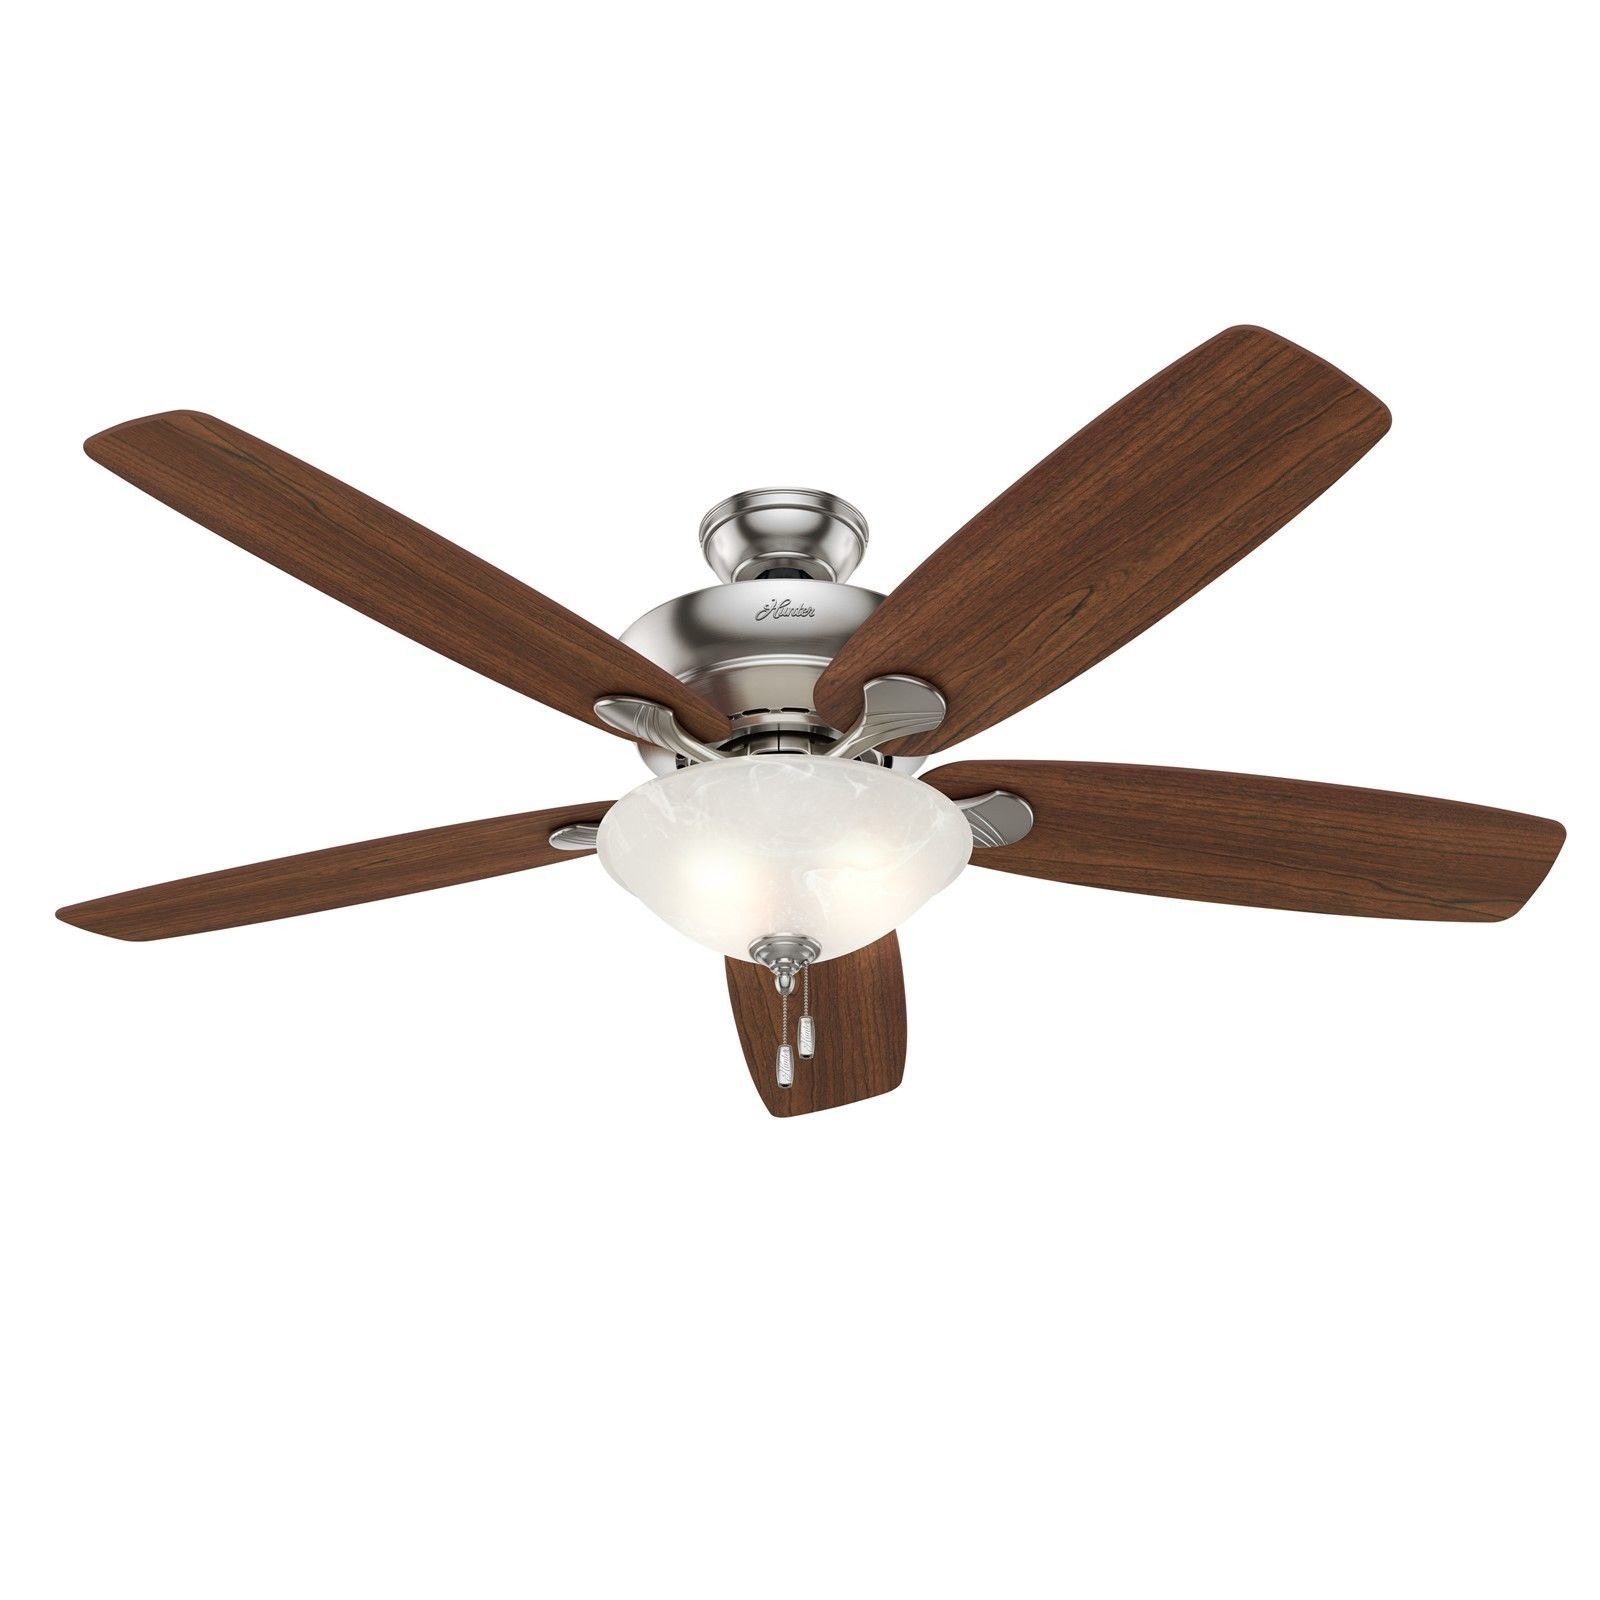 Maple colored ceiling fans httpladysrofo pinterest maple colored ceiling fans aloadofball Gallery